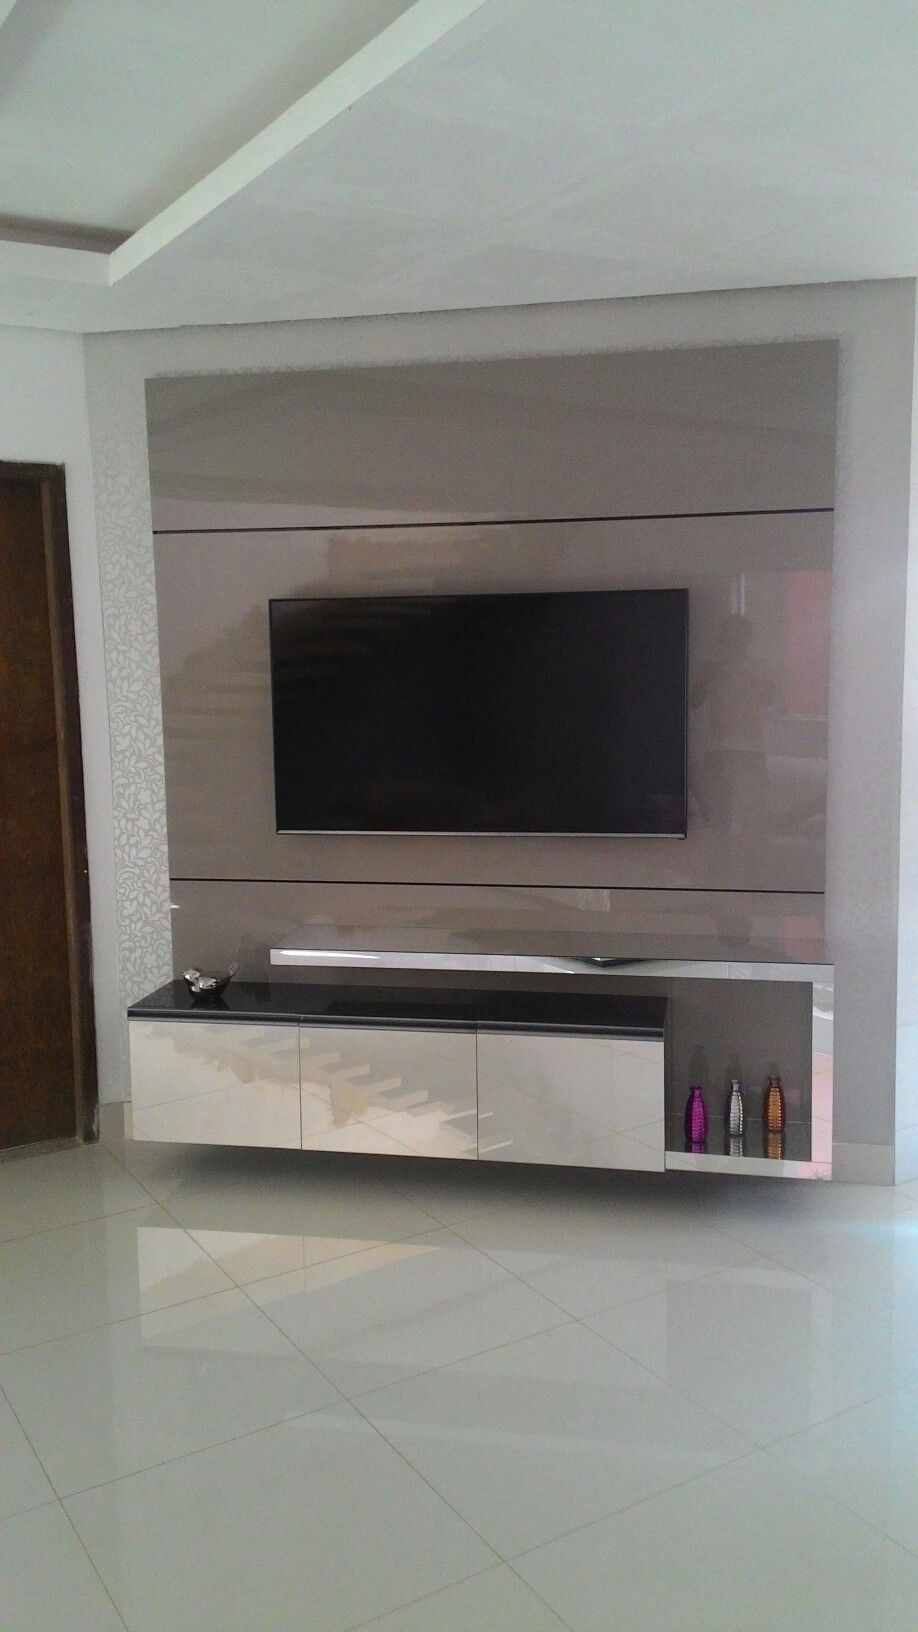 Lcd Panel Design Tv Unit Design Tv: Tv Room Design, Lcd Panel Design, Modern Tv